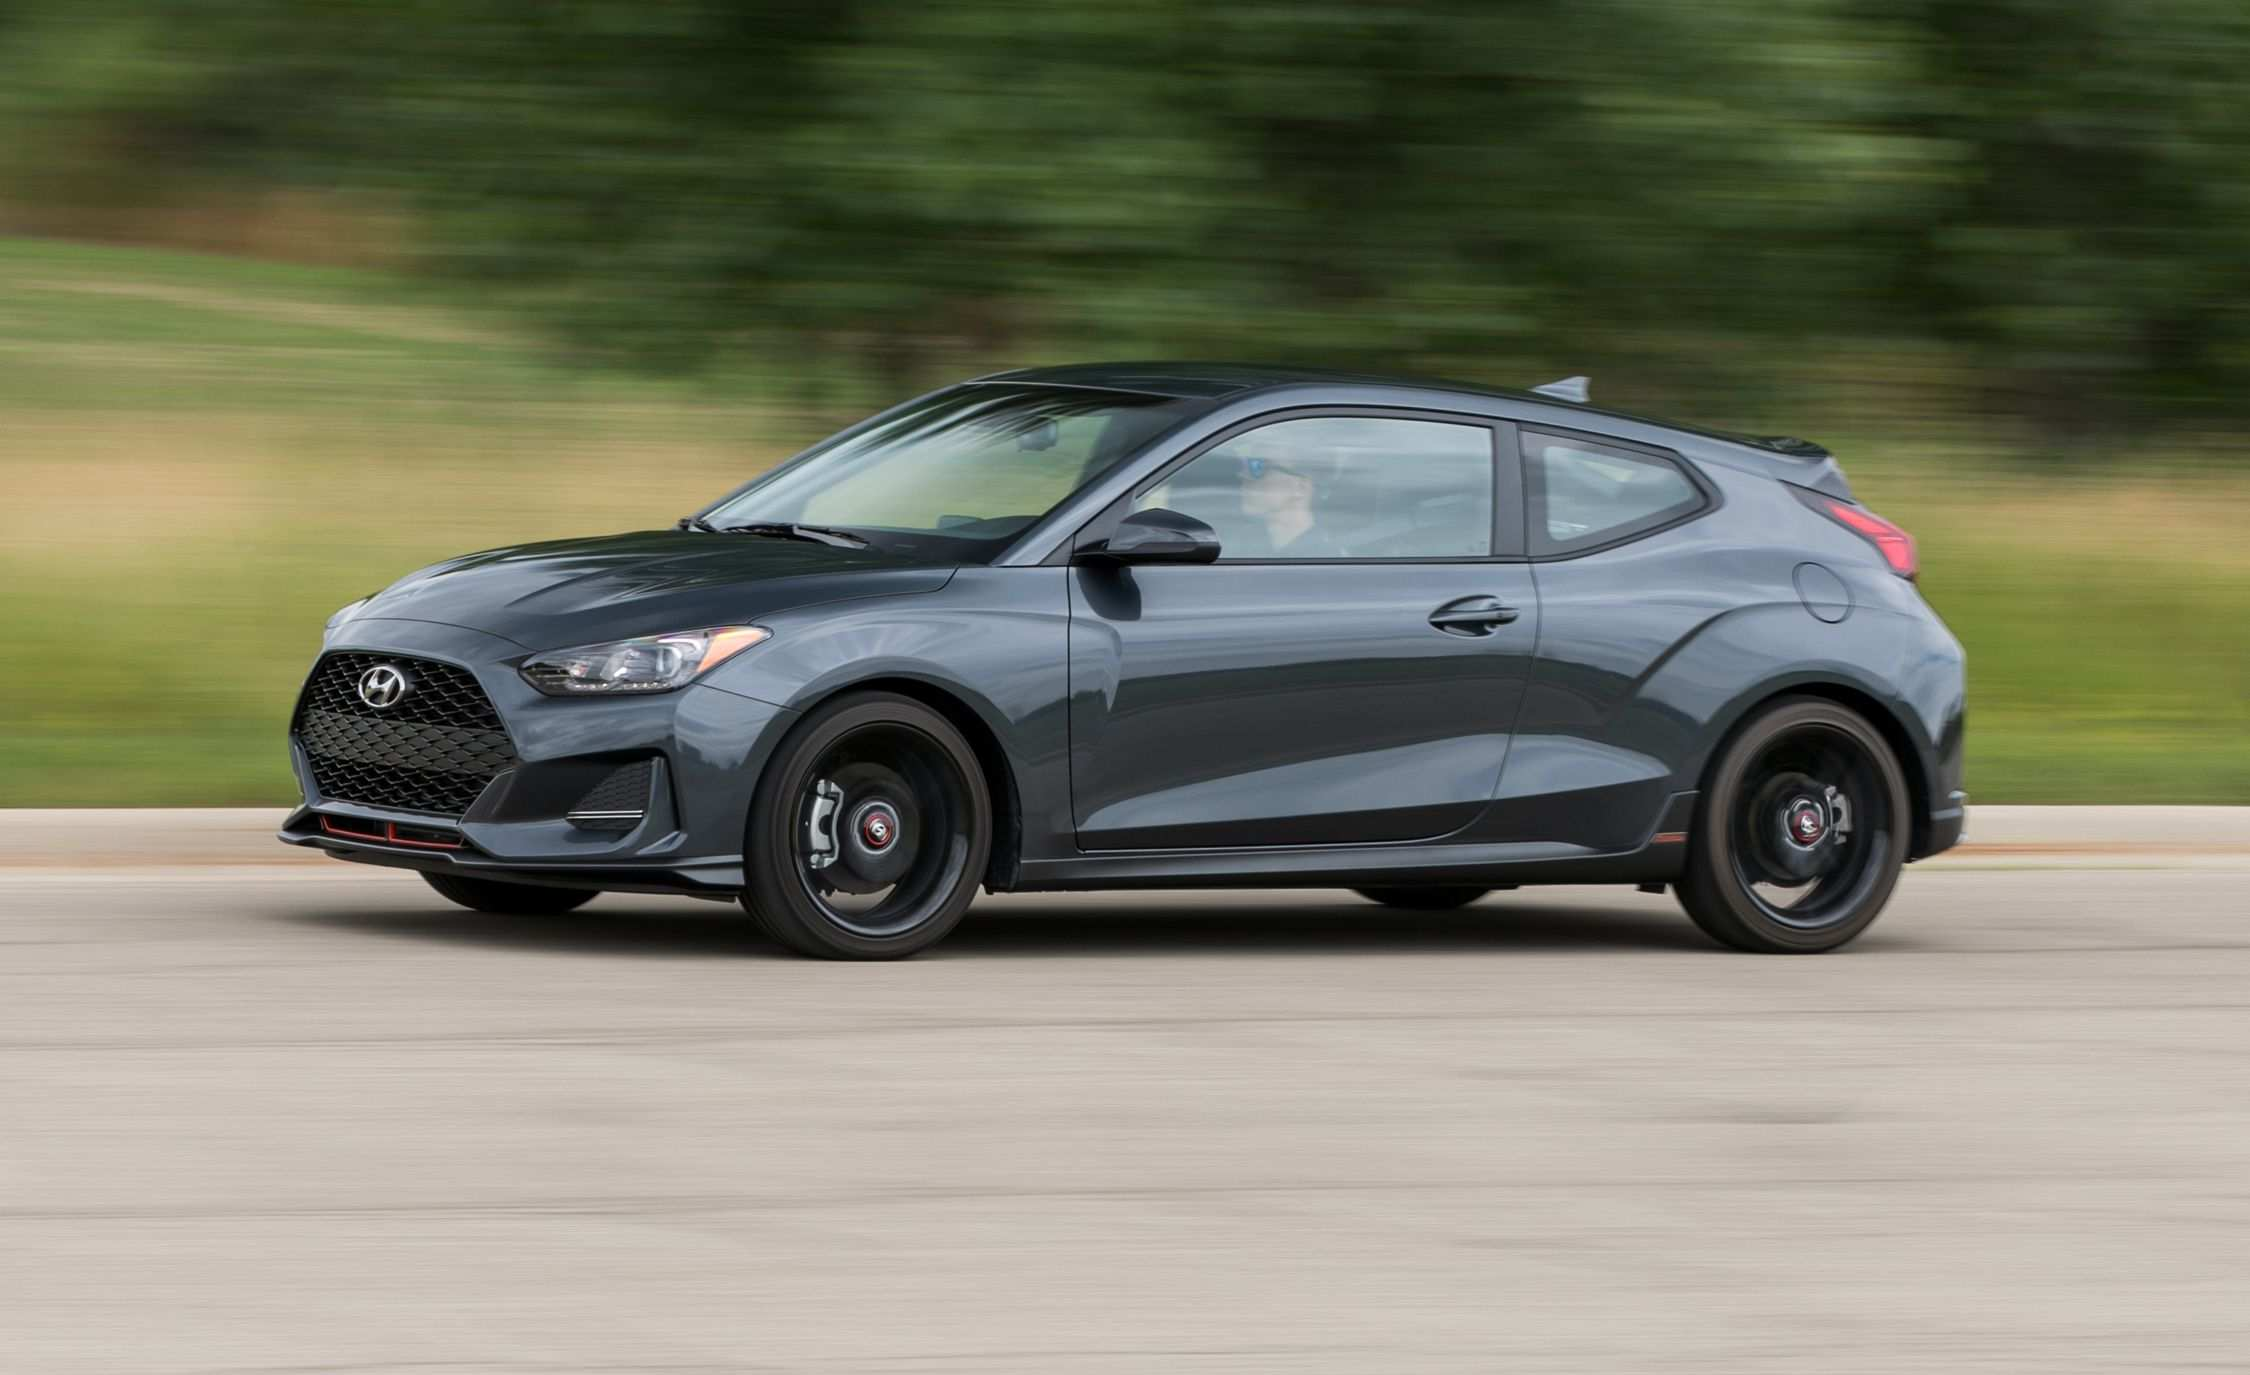 51 Best Review 2019 Hyundai Veloster Turbo Pricing for 2019 Hyundai Veloster Turbo